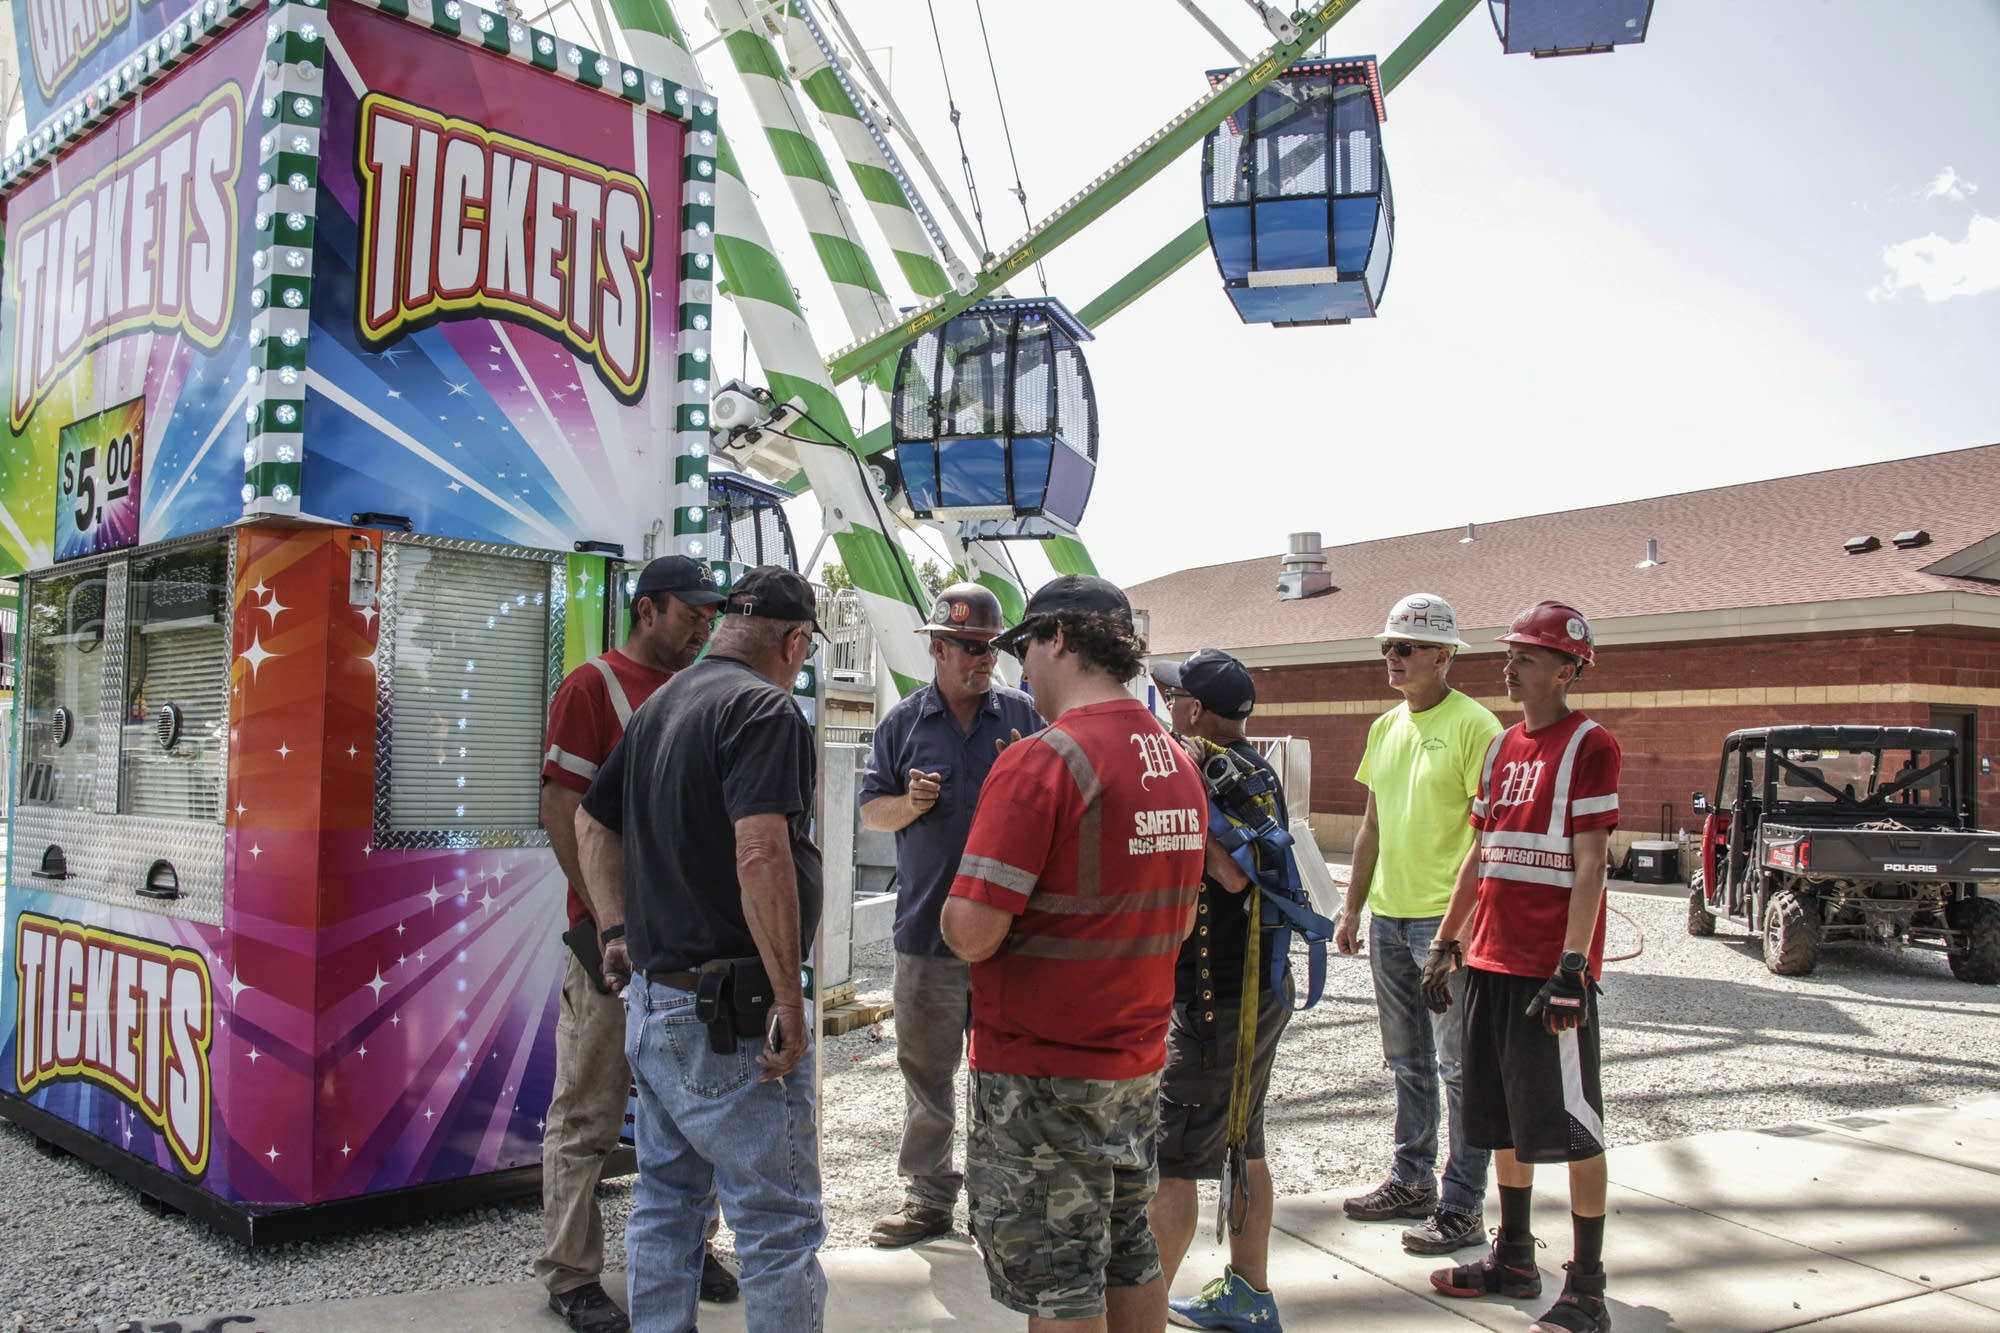 Workers finished the inspection to open up the Big Wheel